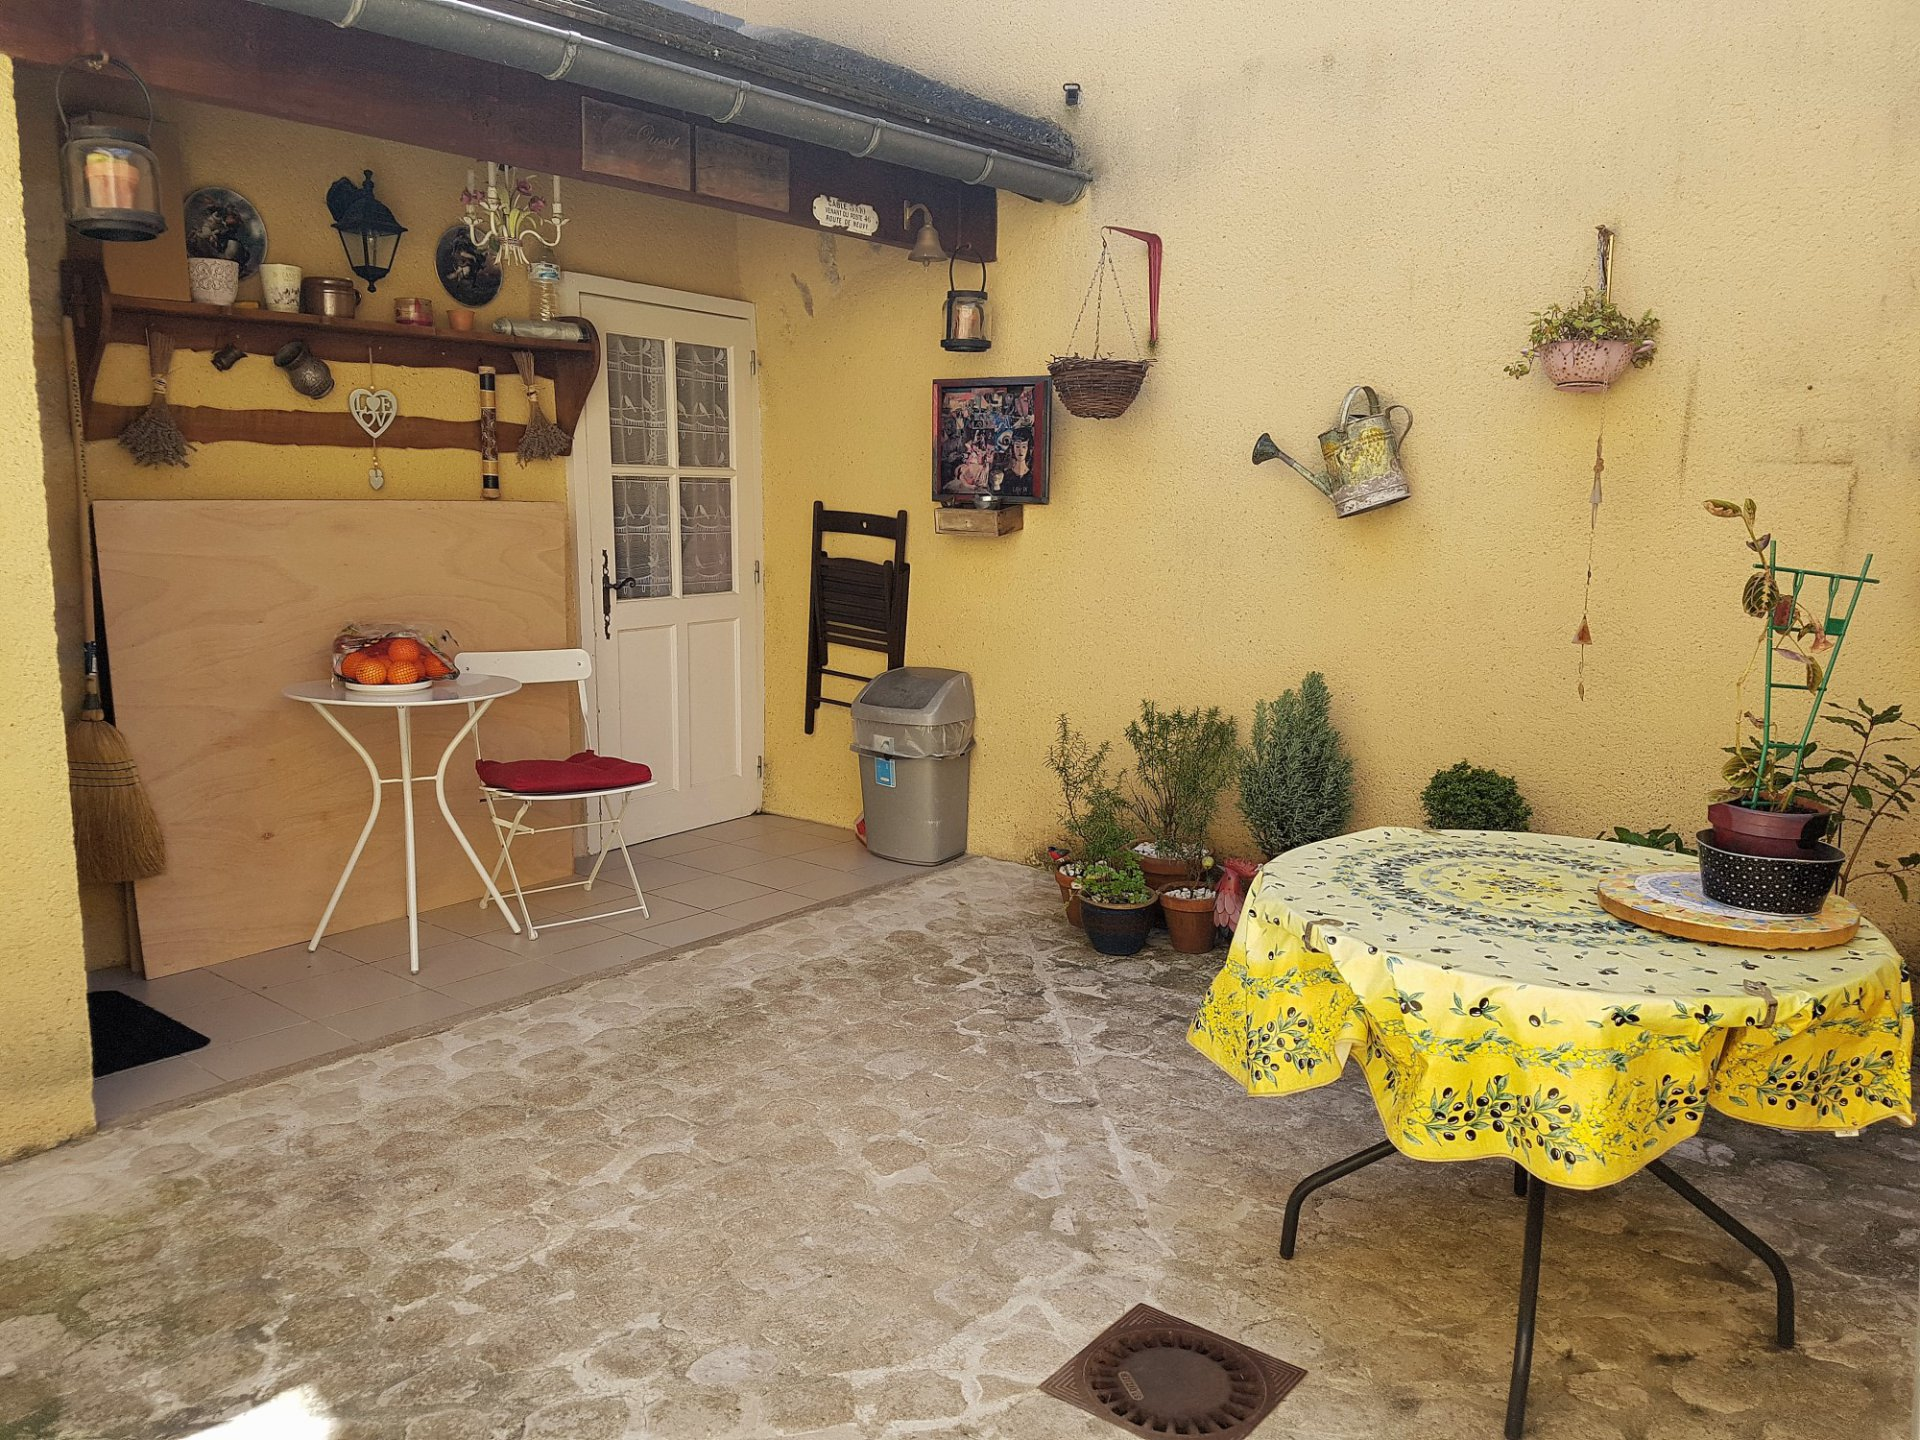 Vienne (86), La Trimouille: house with lovely courtyard